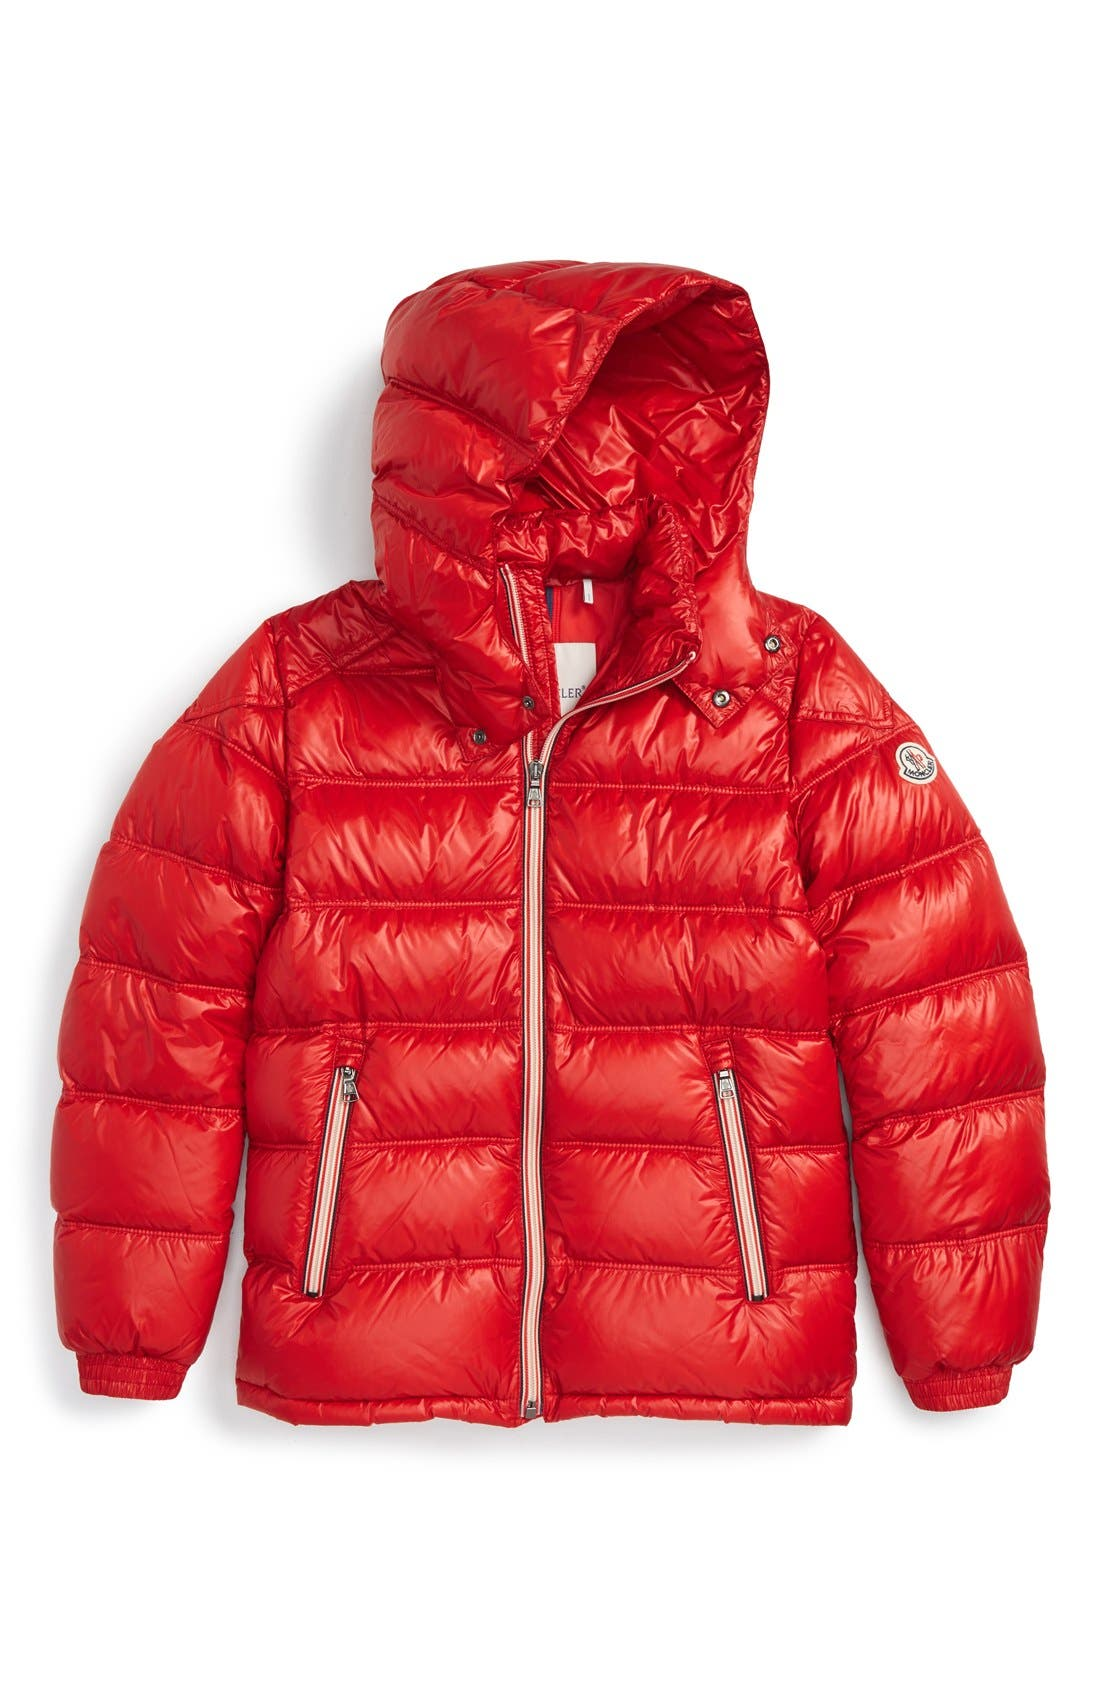 moncler jackets for toddlers